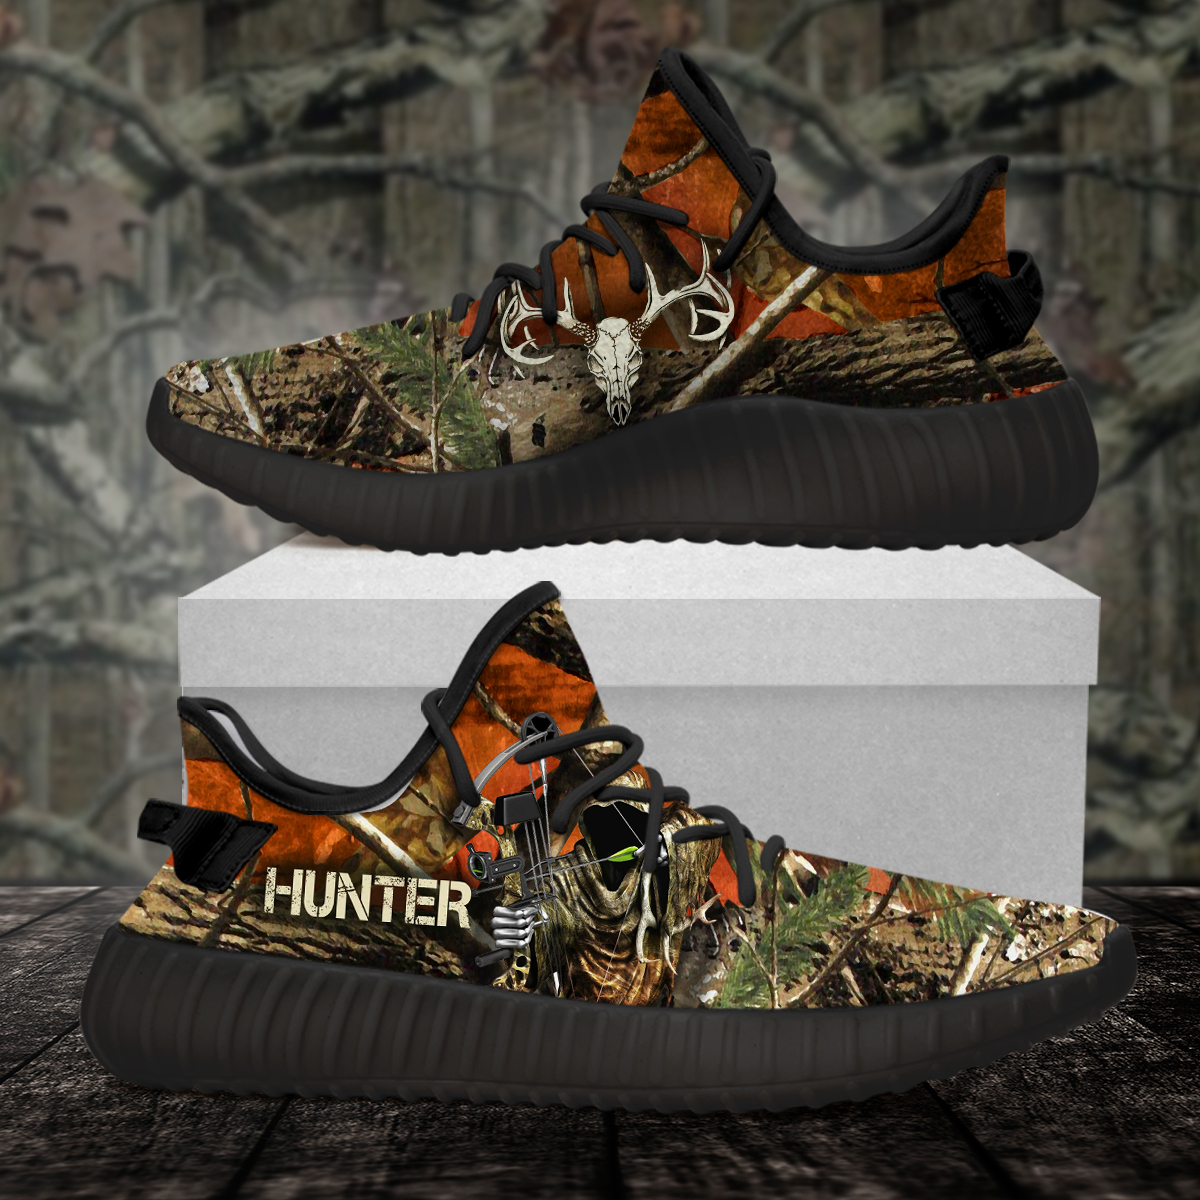 Deer hunting pattern yeezy shoes 4